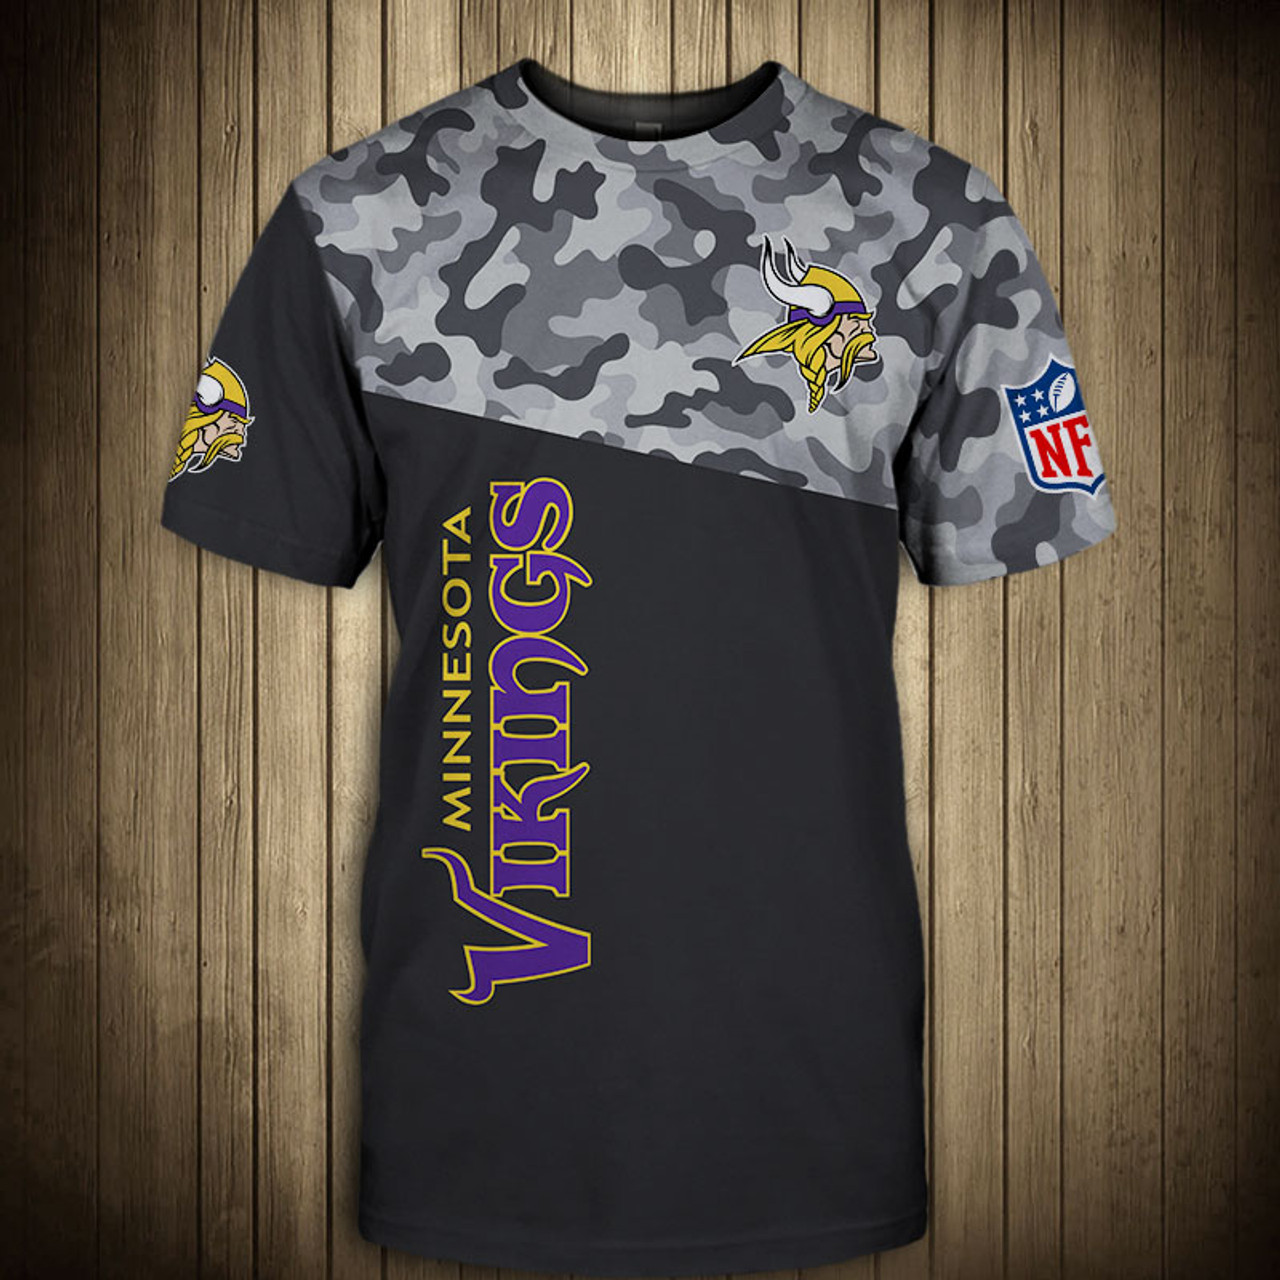 **(OFFICIAL-N.F.L.MINNESOTA-VIKINGS-CAMO.DESIGN-TEAM-TEES/CUSTOM-3D-VIKINGS-OFFICIAL-LOGOS & OFFICIAL-VIKINGS-TEAM-COLORS/DETAILED-3D-GRAPHIC-PRINTED-DOUBLE-SIDED/ALL-OVER-FRONT & BACK-GRAPHIC-PRINTED-DESIGN/PREMIUM-N.F.L.VIKINGS-CAMO.TEAM-TEES)**